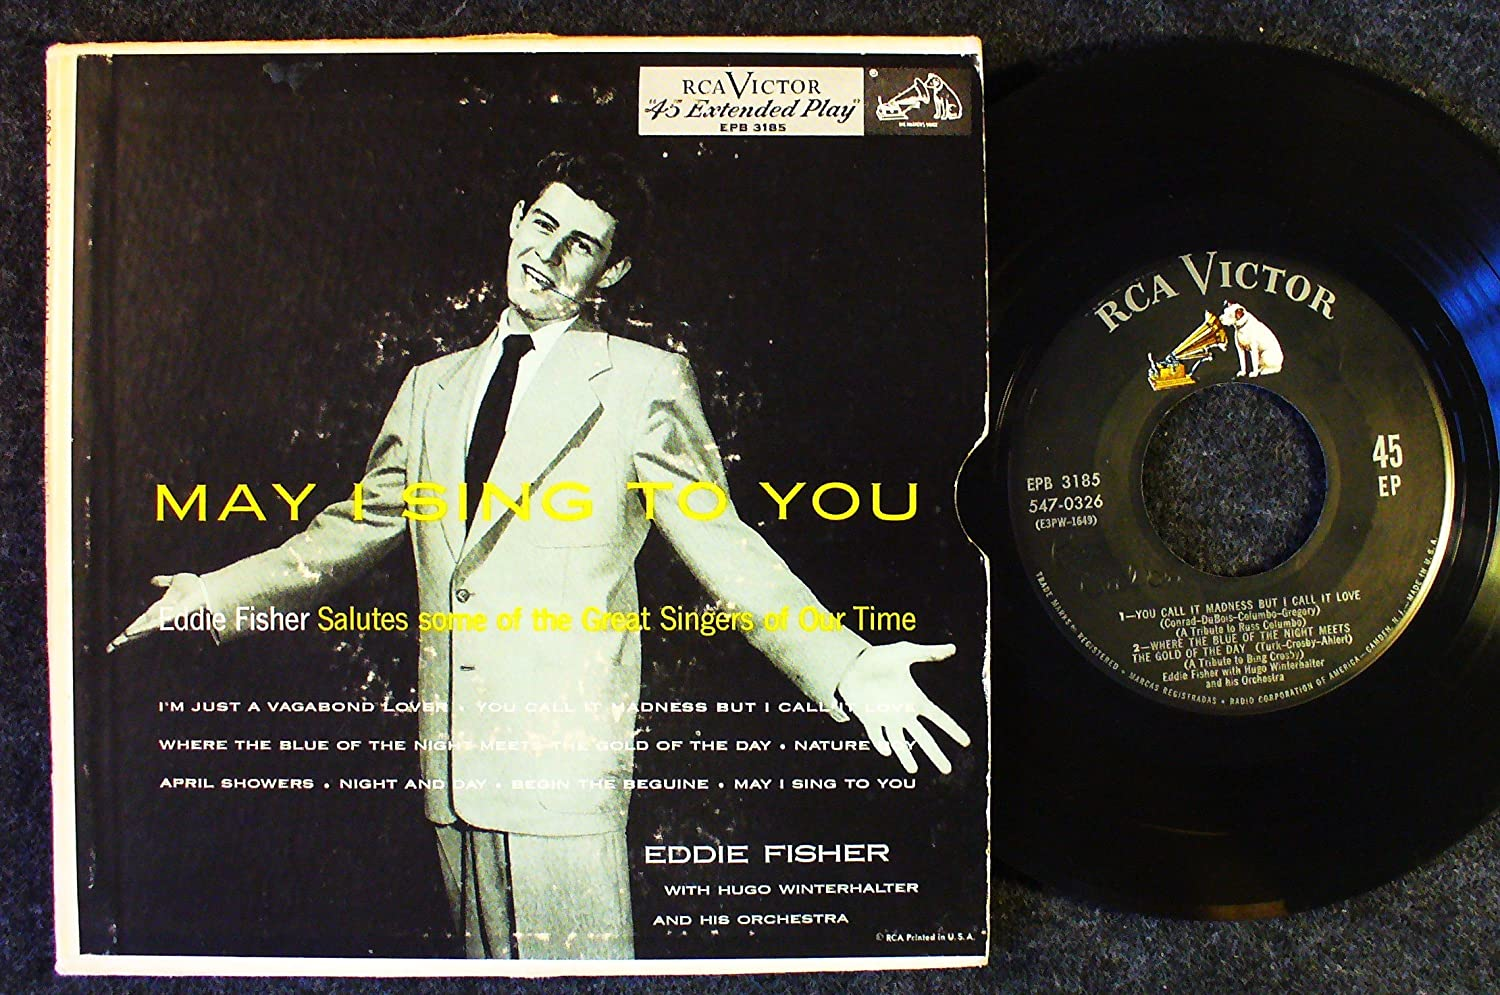 Image for May I Sing To You; Eddie Fisher Salutes Some of the Great Singers of Our Time; 2 record set w/ picture sleeve